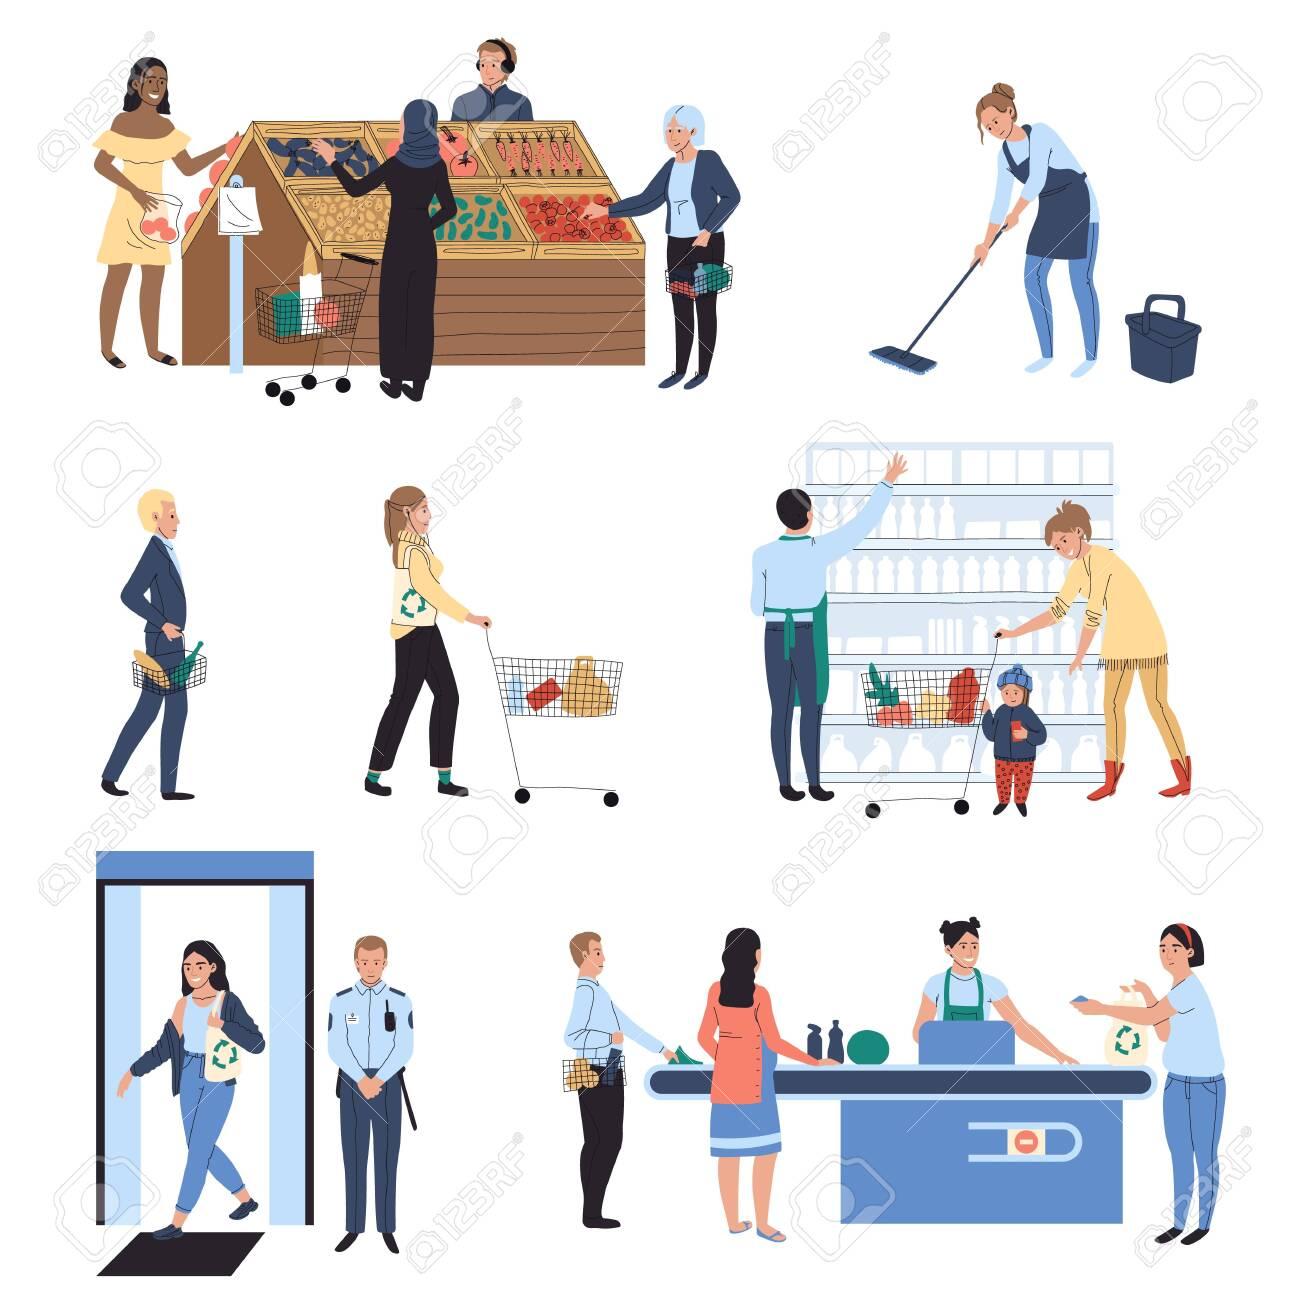 People shopping in supermarket, grocery store vector illustration - 139747940